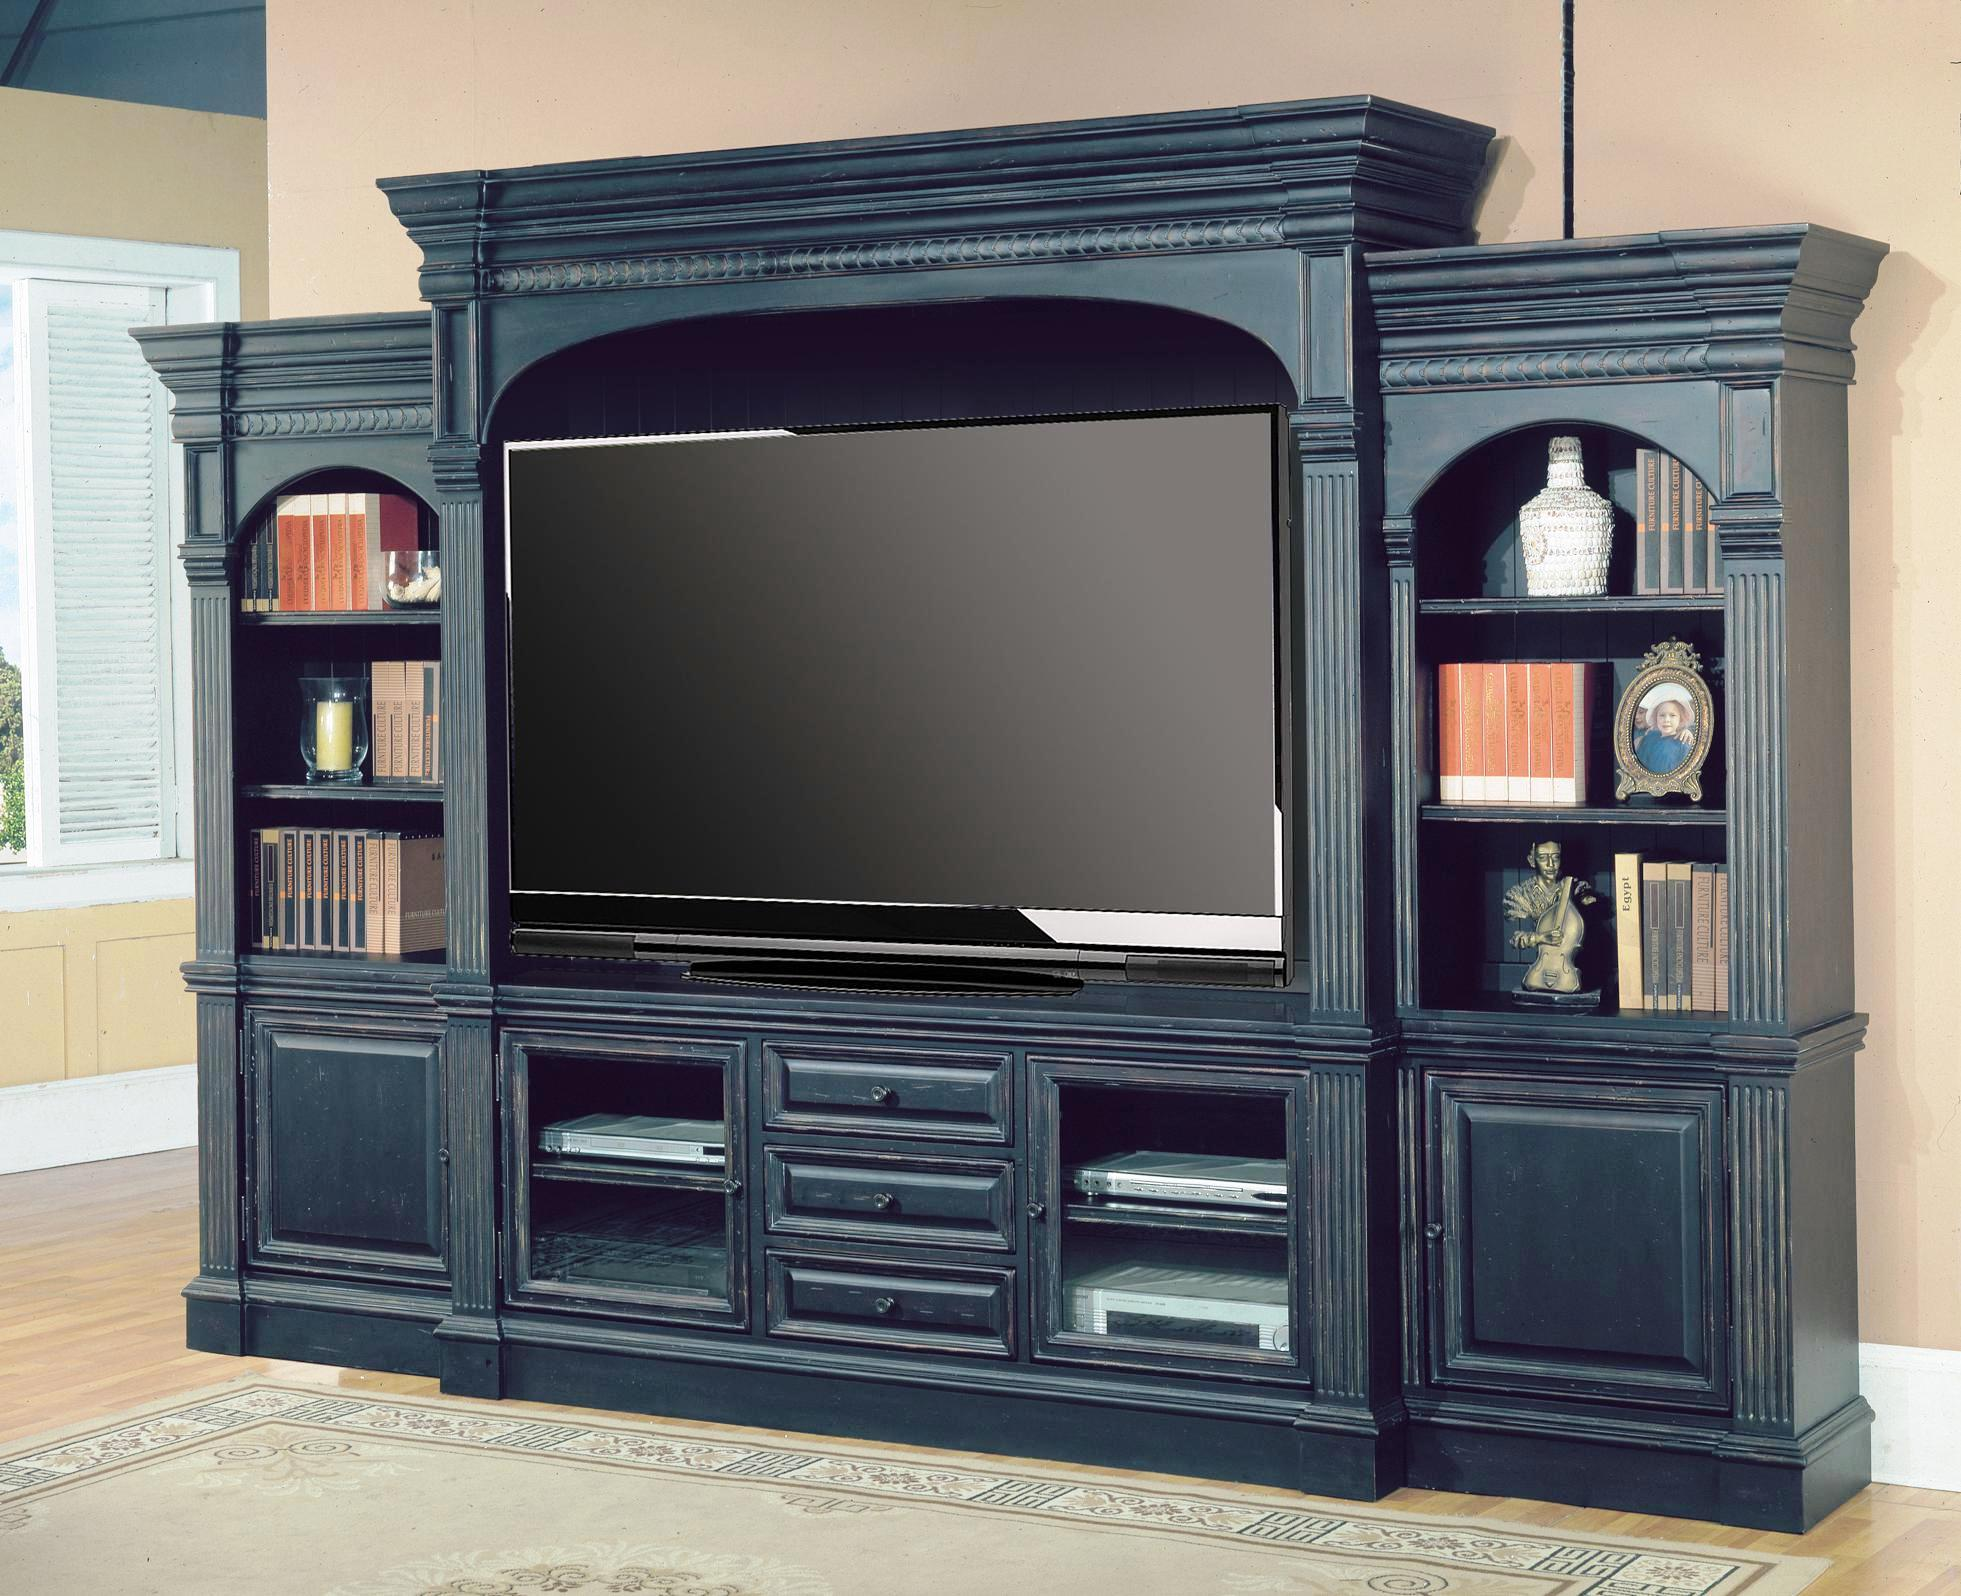 Image of: Wall Mounted Entertainment Center